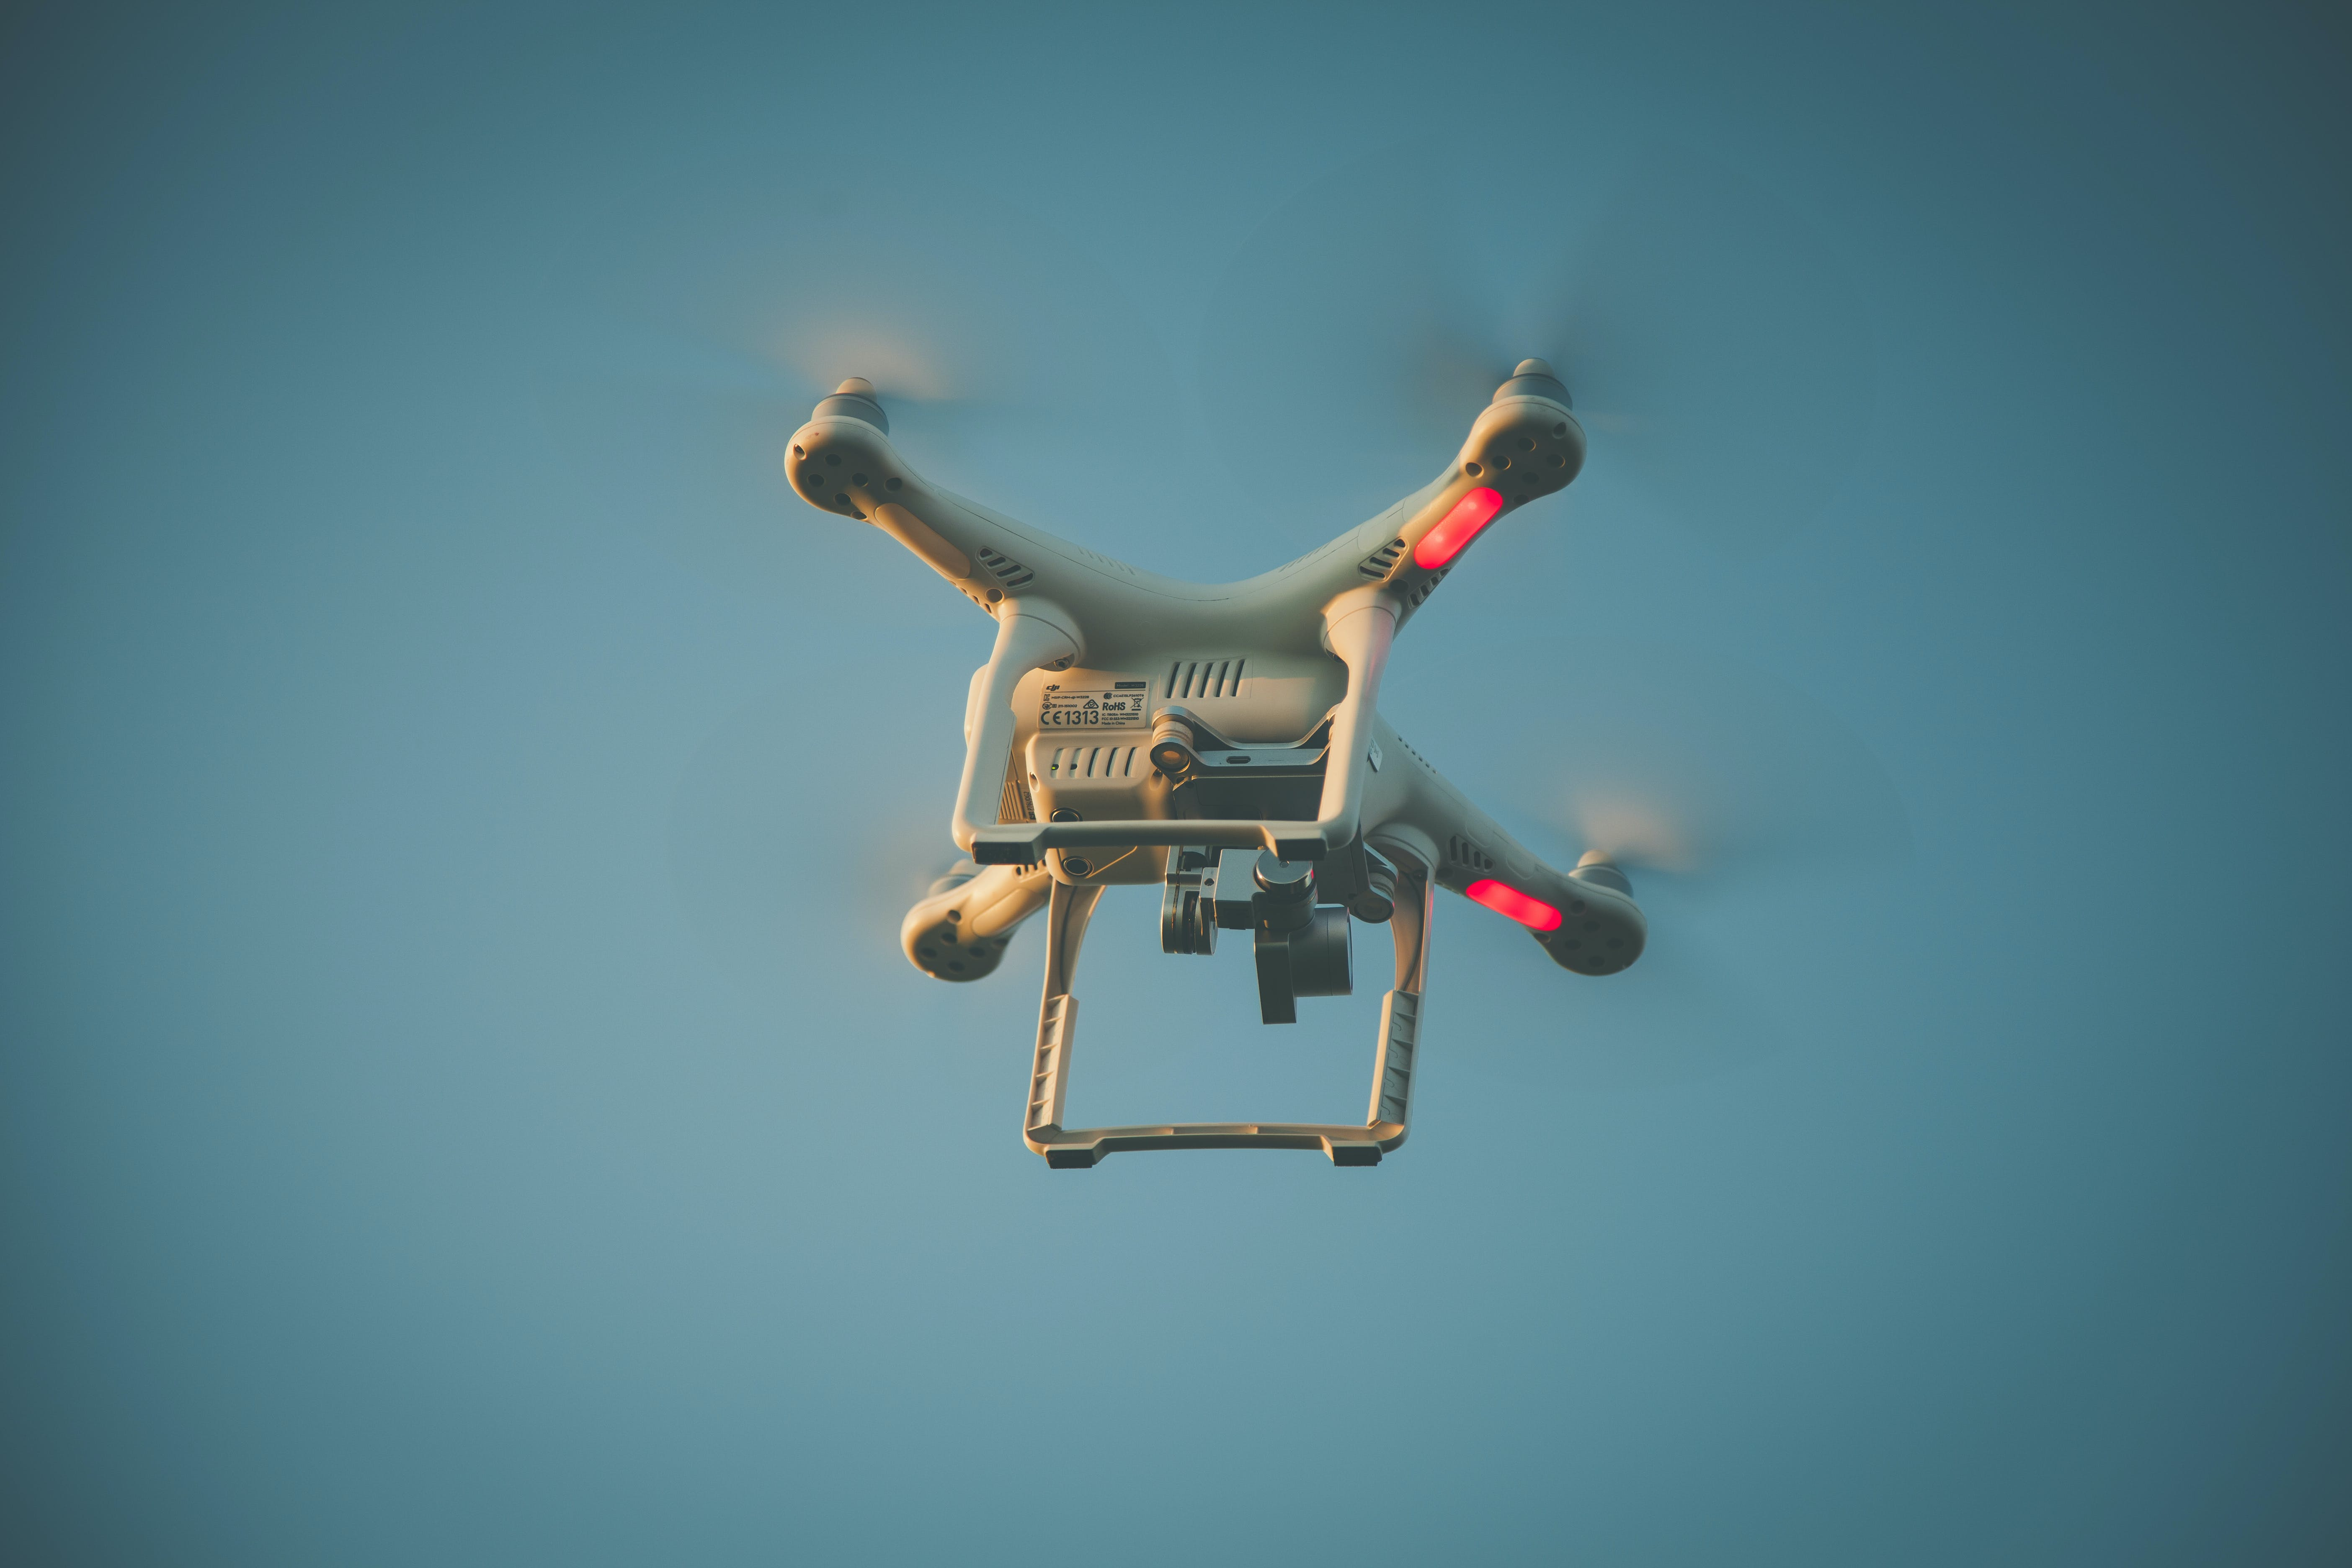 Worm's Eyeview Photo of White Quadcopter